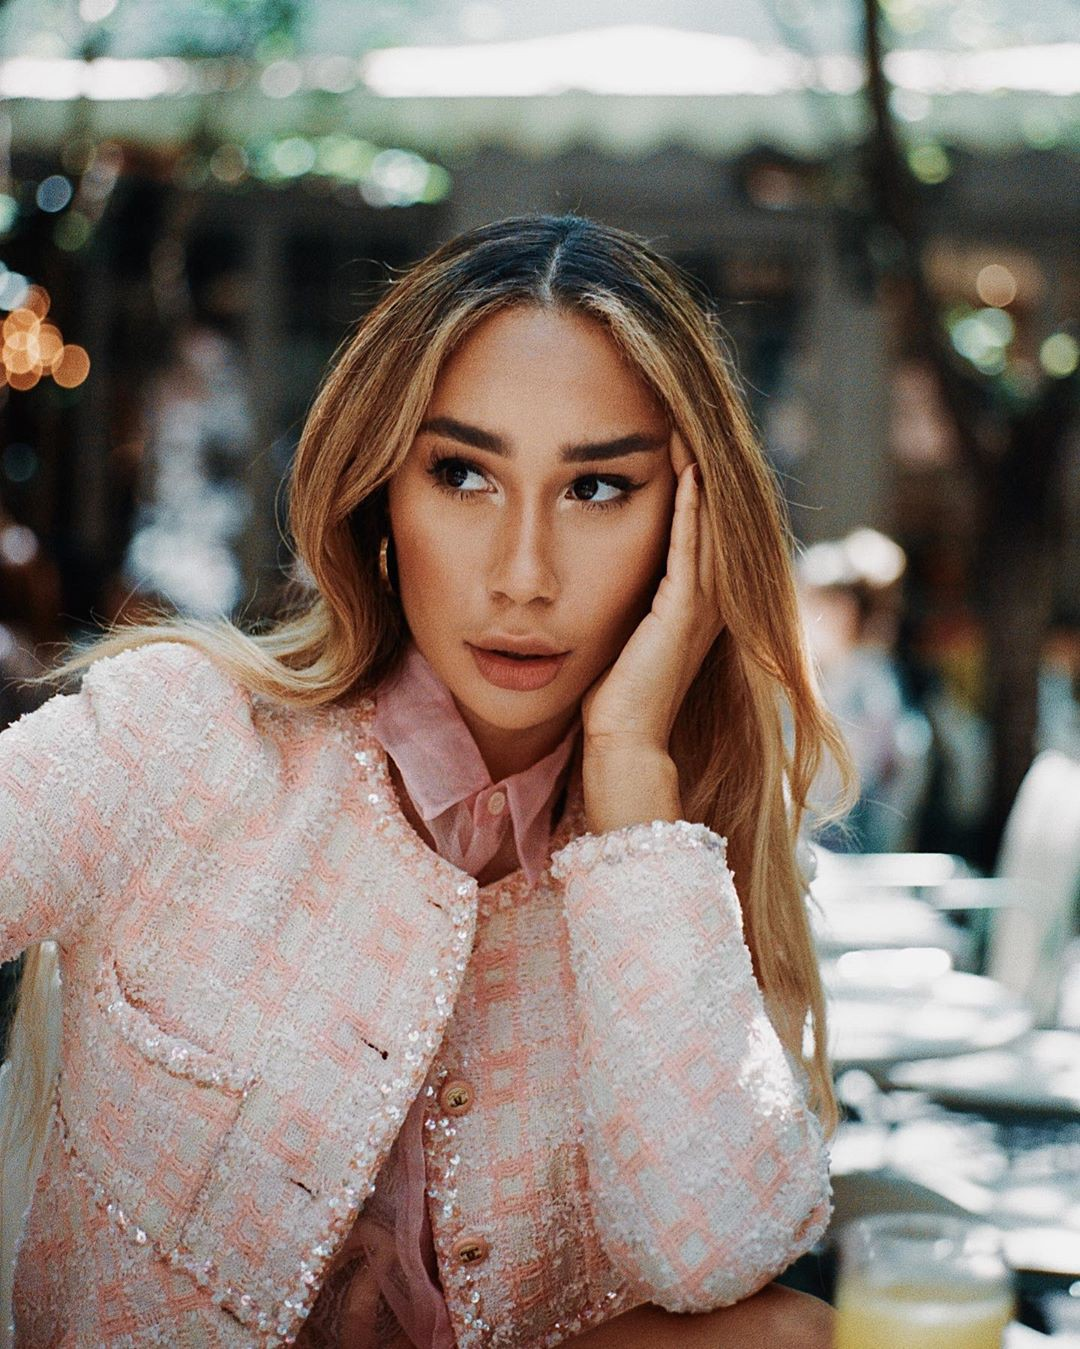 Eva Gutowski blond hairs, Girls With Cute Face, Glossy Lips